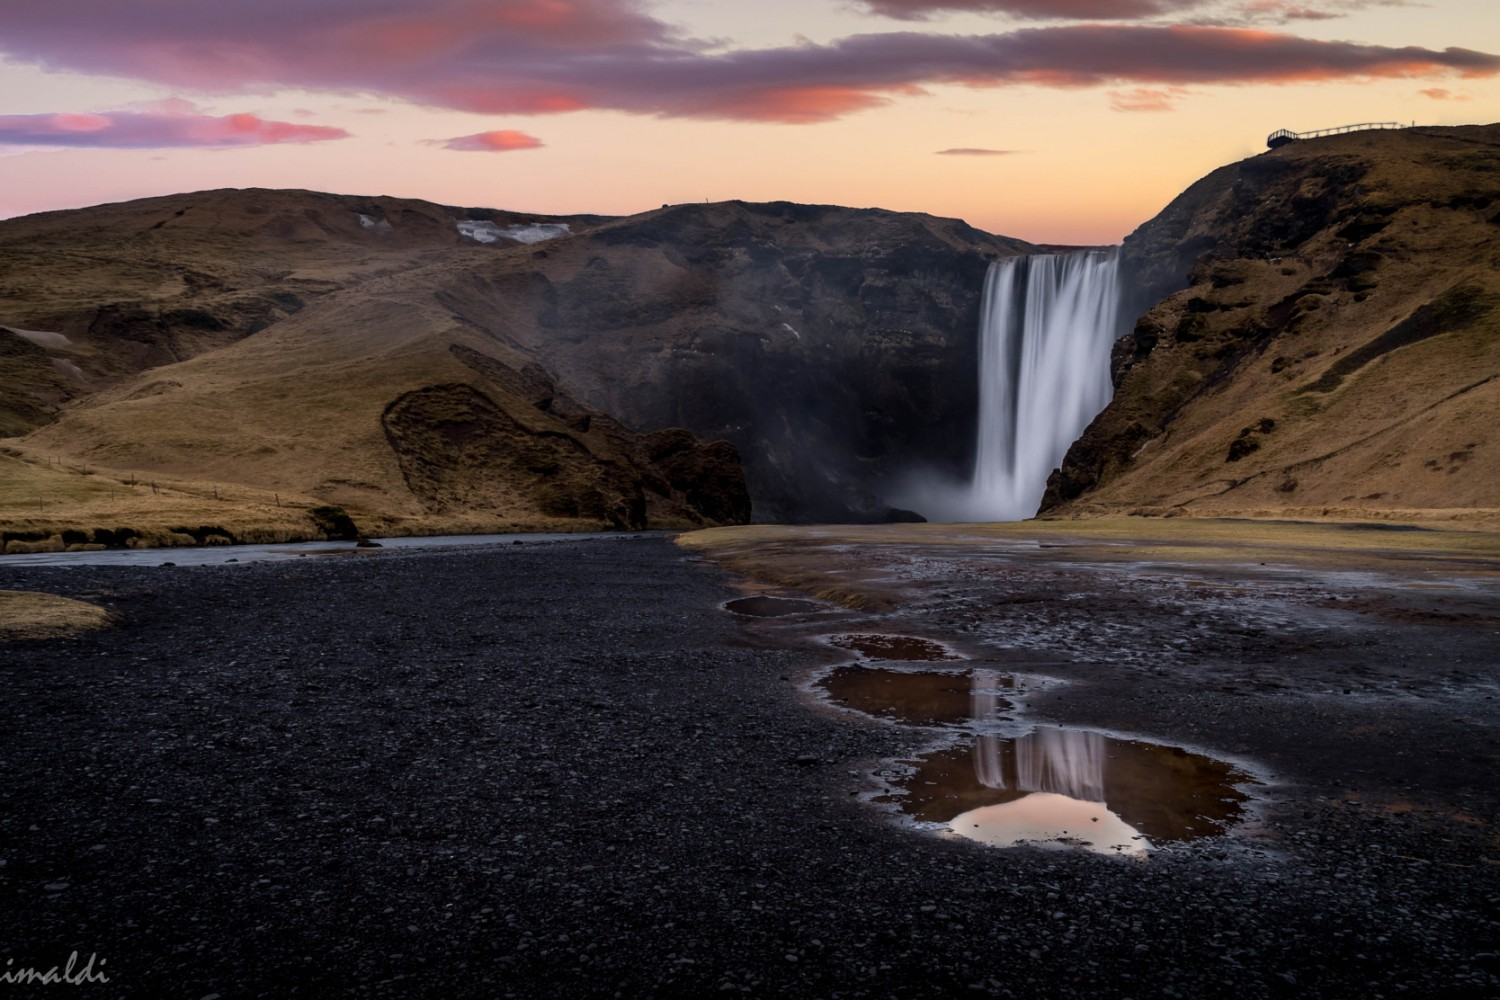 50 Photos of Our Crazy Beautiful Planet to Help You Celebrate Earth Day